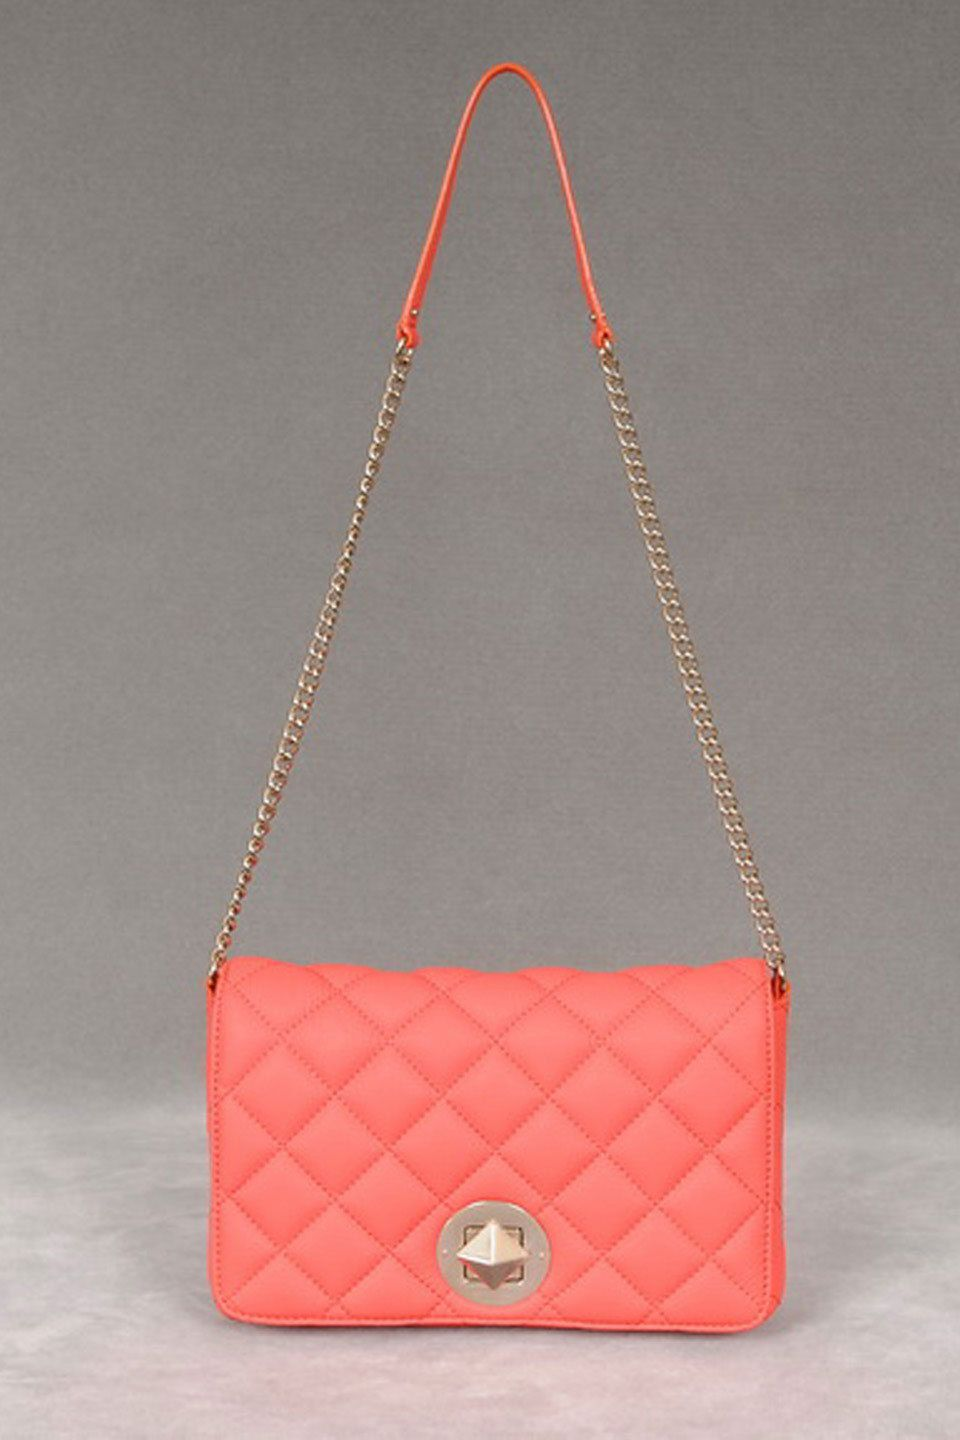 Kate Spade Gold Coast Meadow Flap Bag In Flo Coral - Beyond the Rack